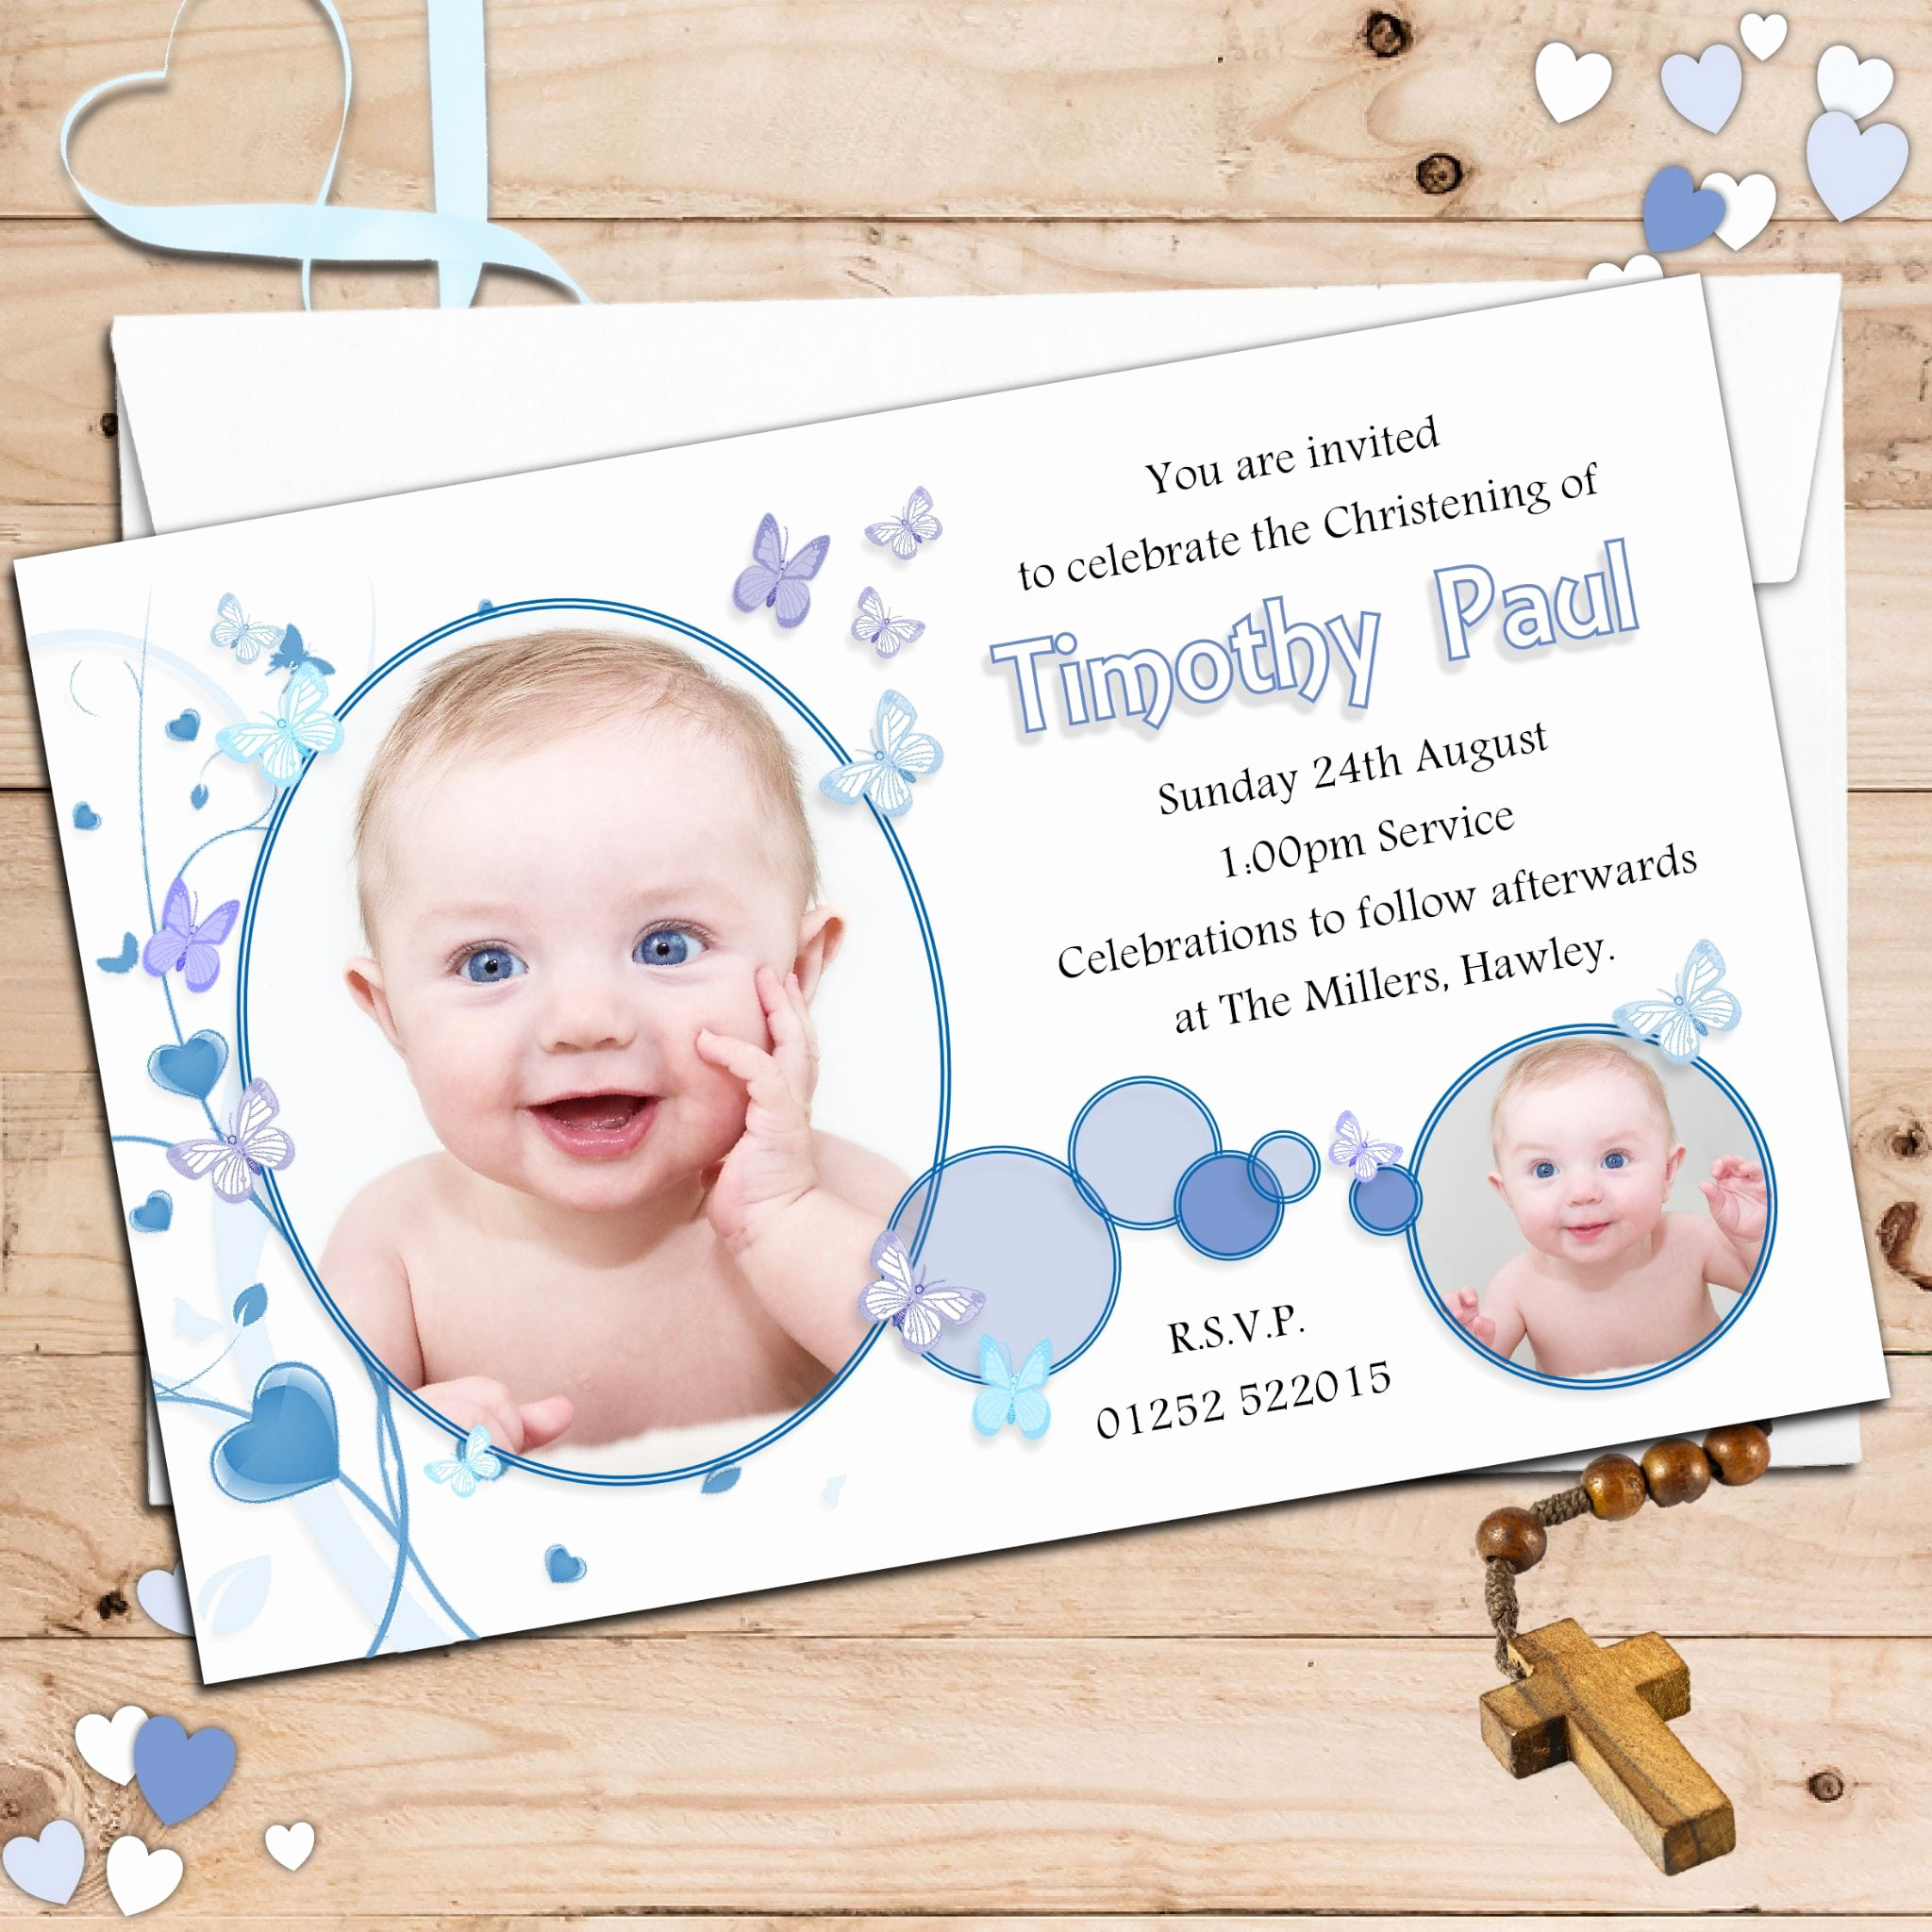 Christening Invitation for Baby Boy Inspirational Invitation for Christening Baby Boy